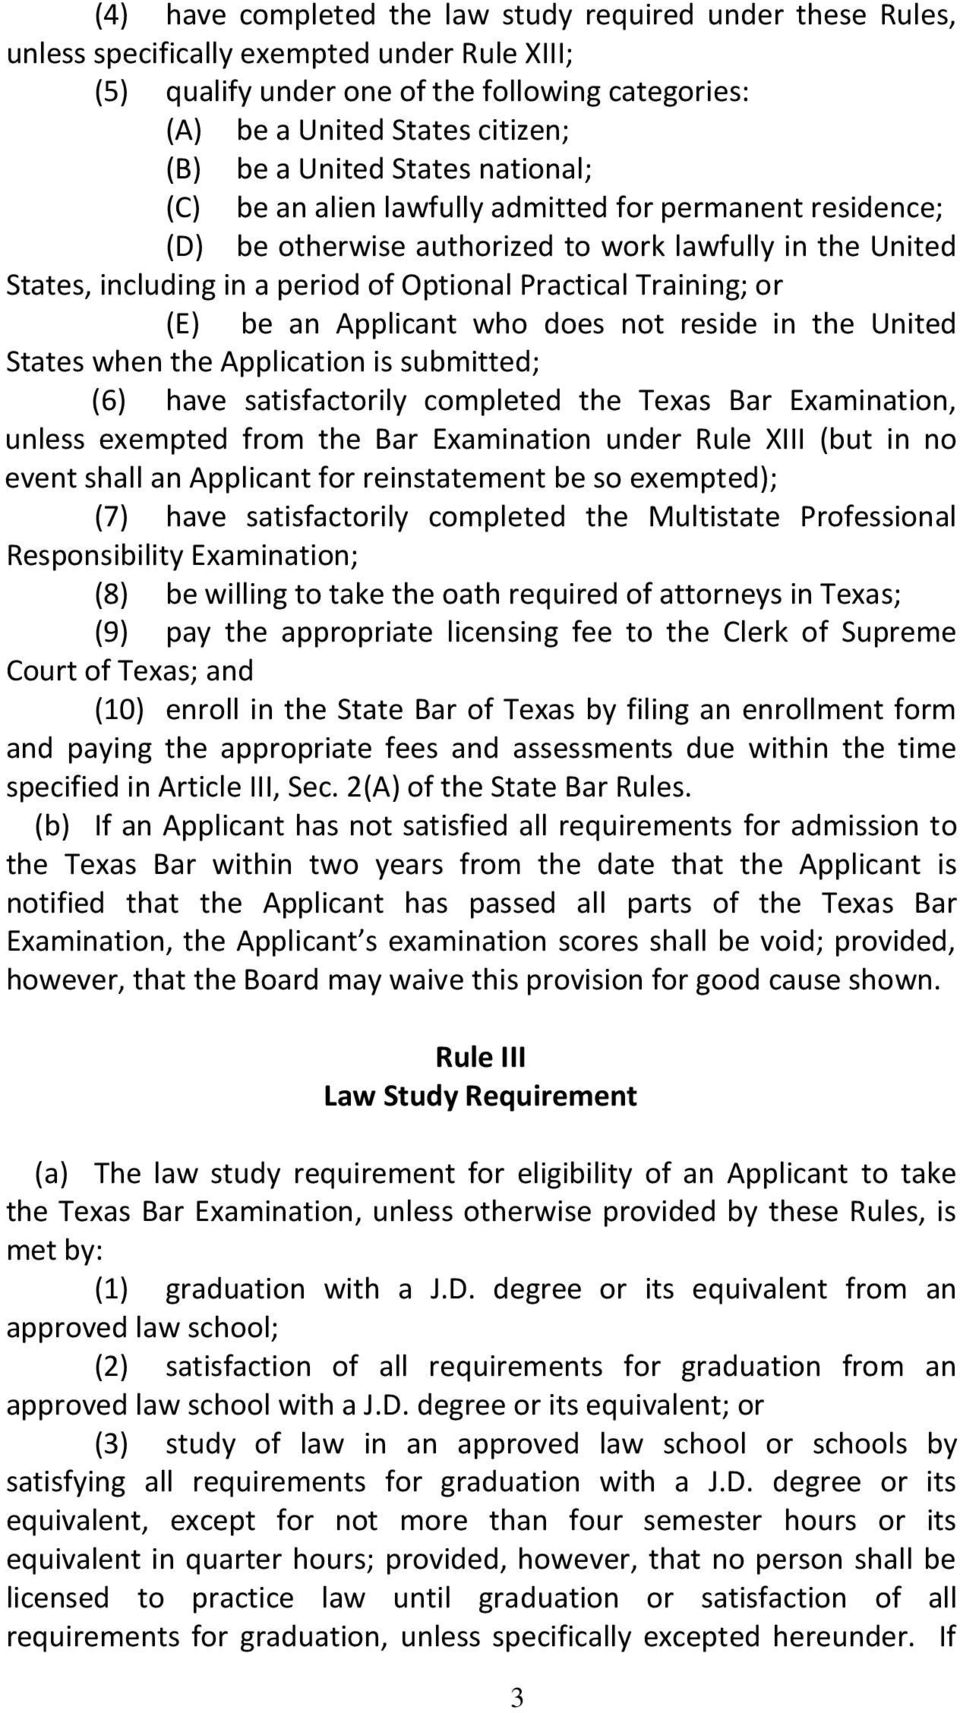 Training; or (E) be an Applicant who does not reside in the United States when the Application is submitted; (6) have satisfactorily completed the Texas Bar Examination, unless exempted from the Bar